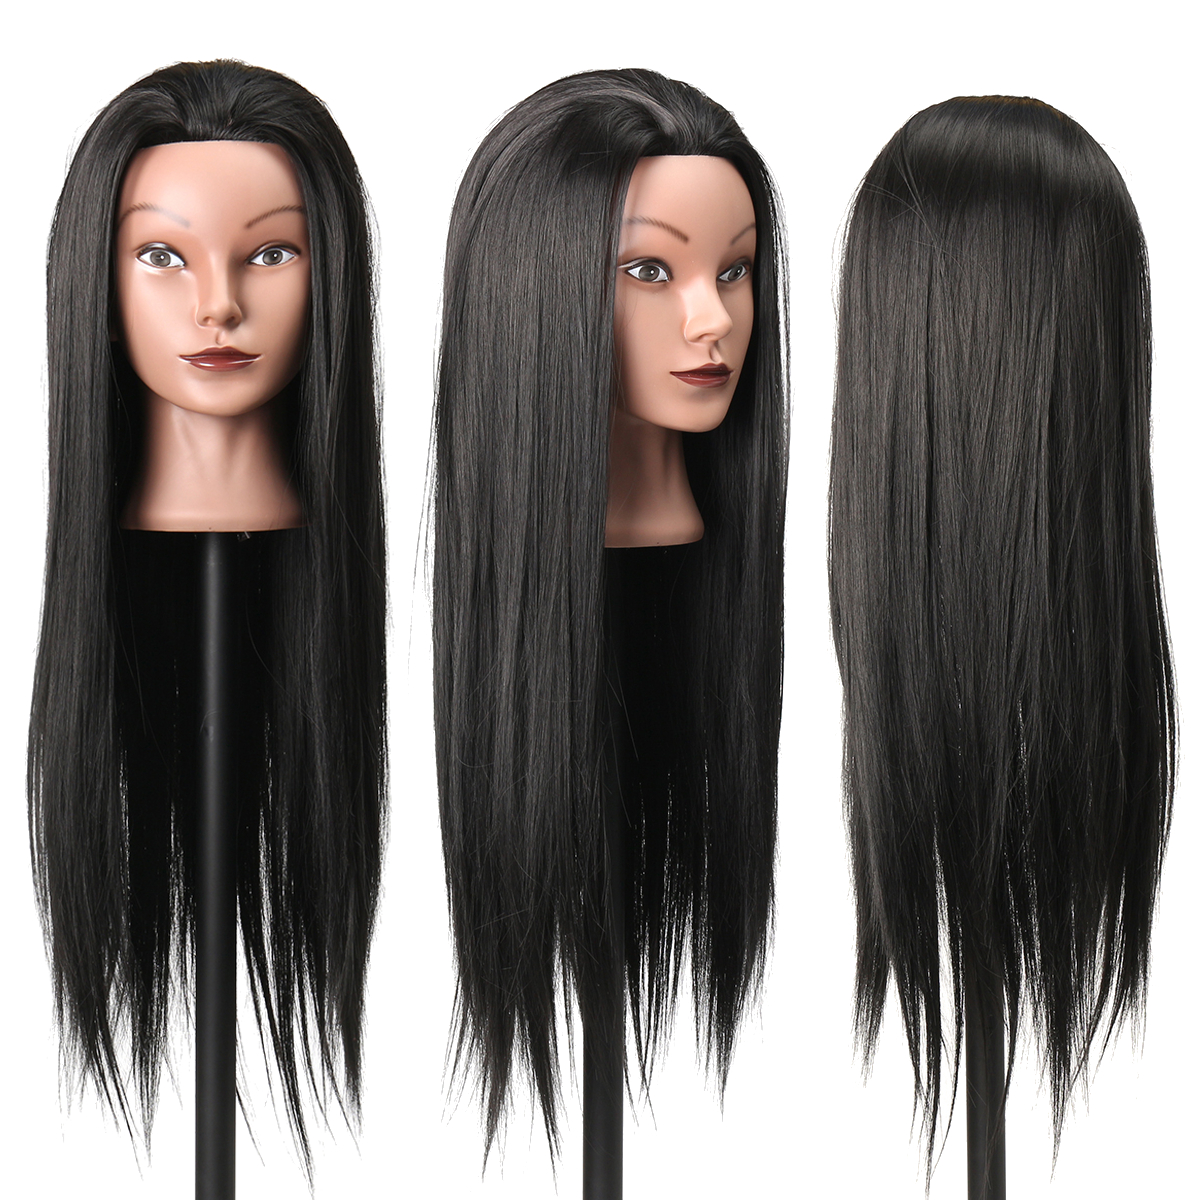 27Inch Black 30% Human Hair Hairdressing Training Head